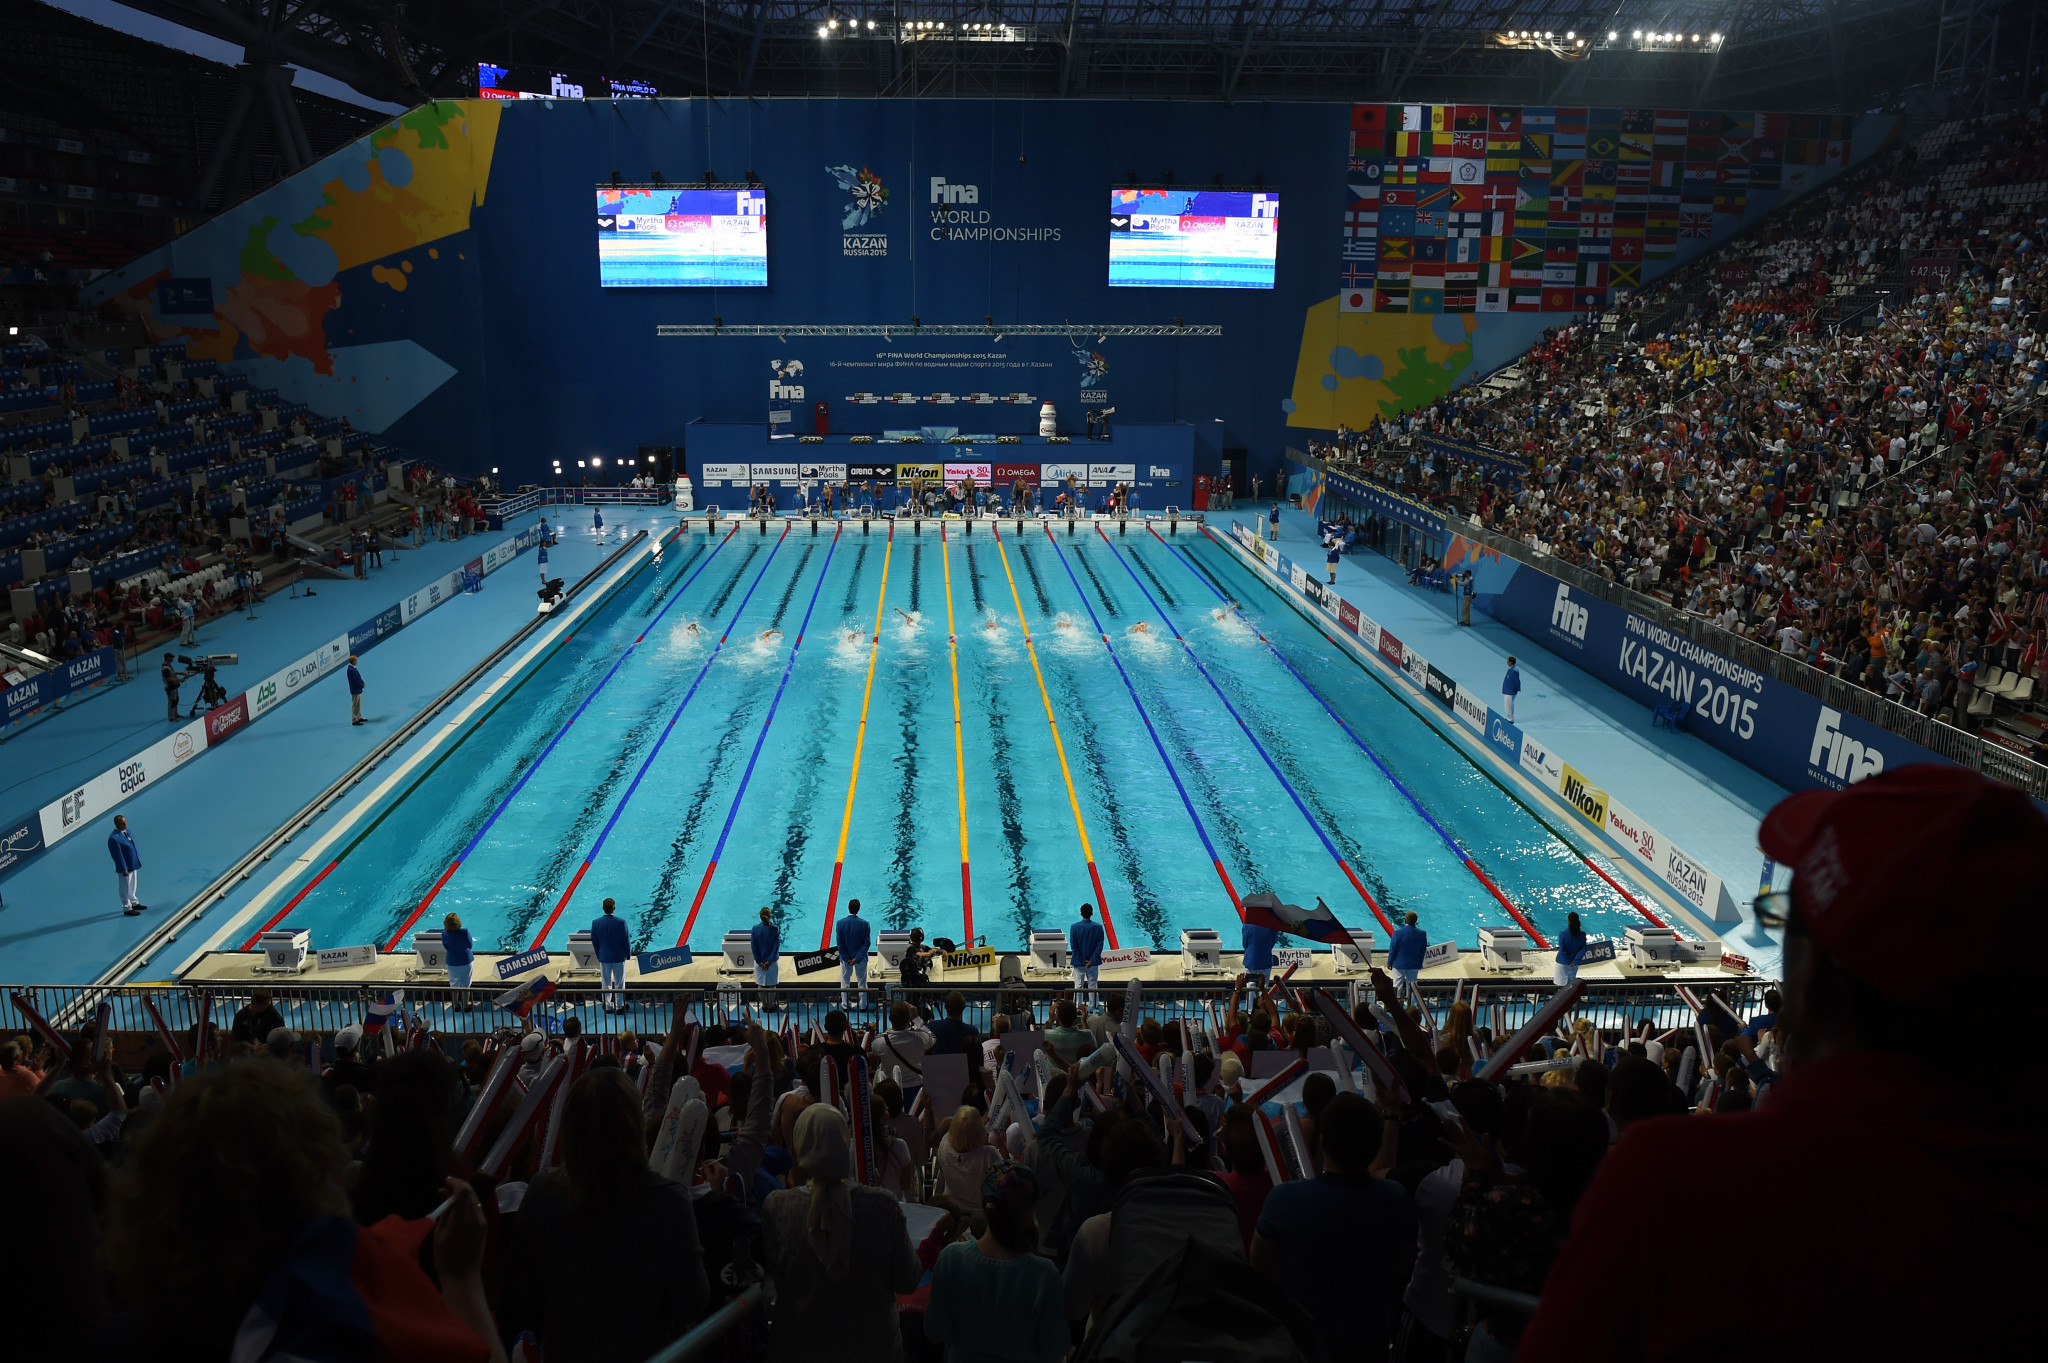 FINA announce top trainers to speak at Swimming Coaches Golden Clinic